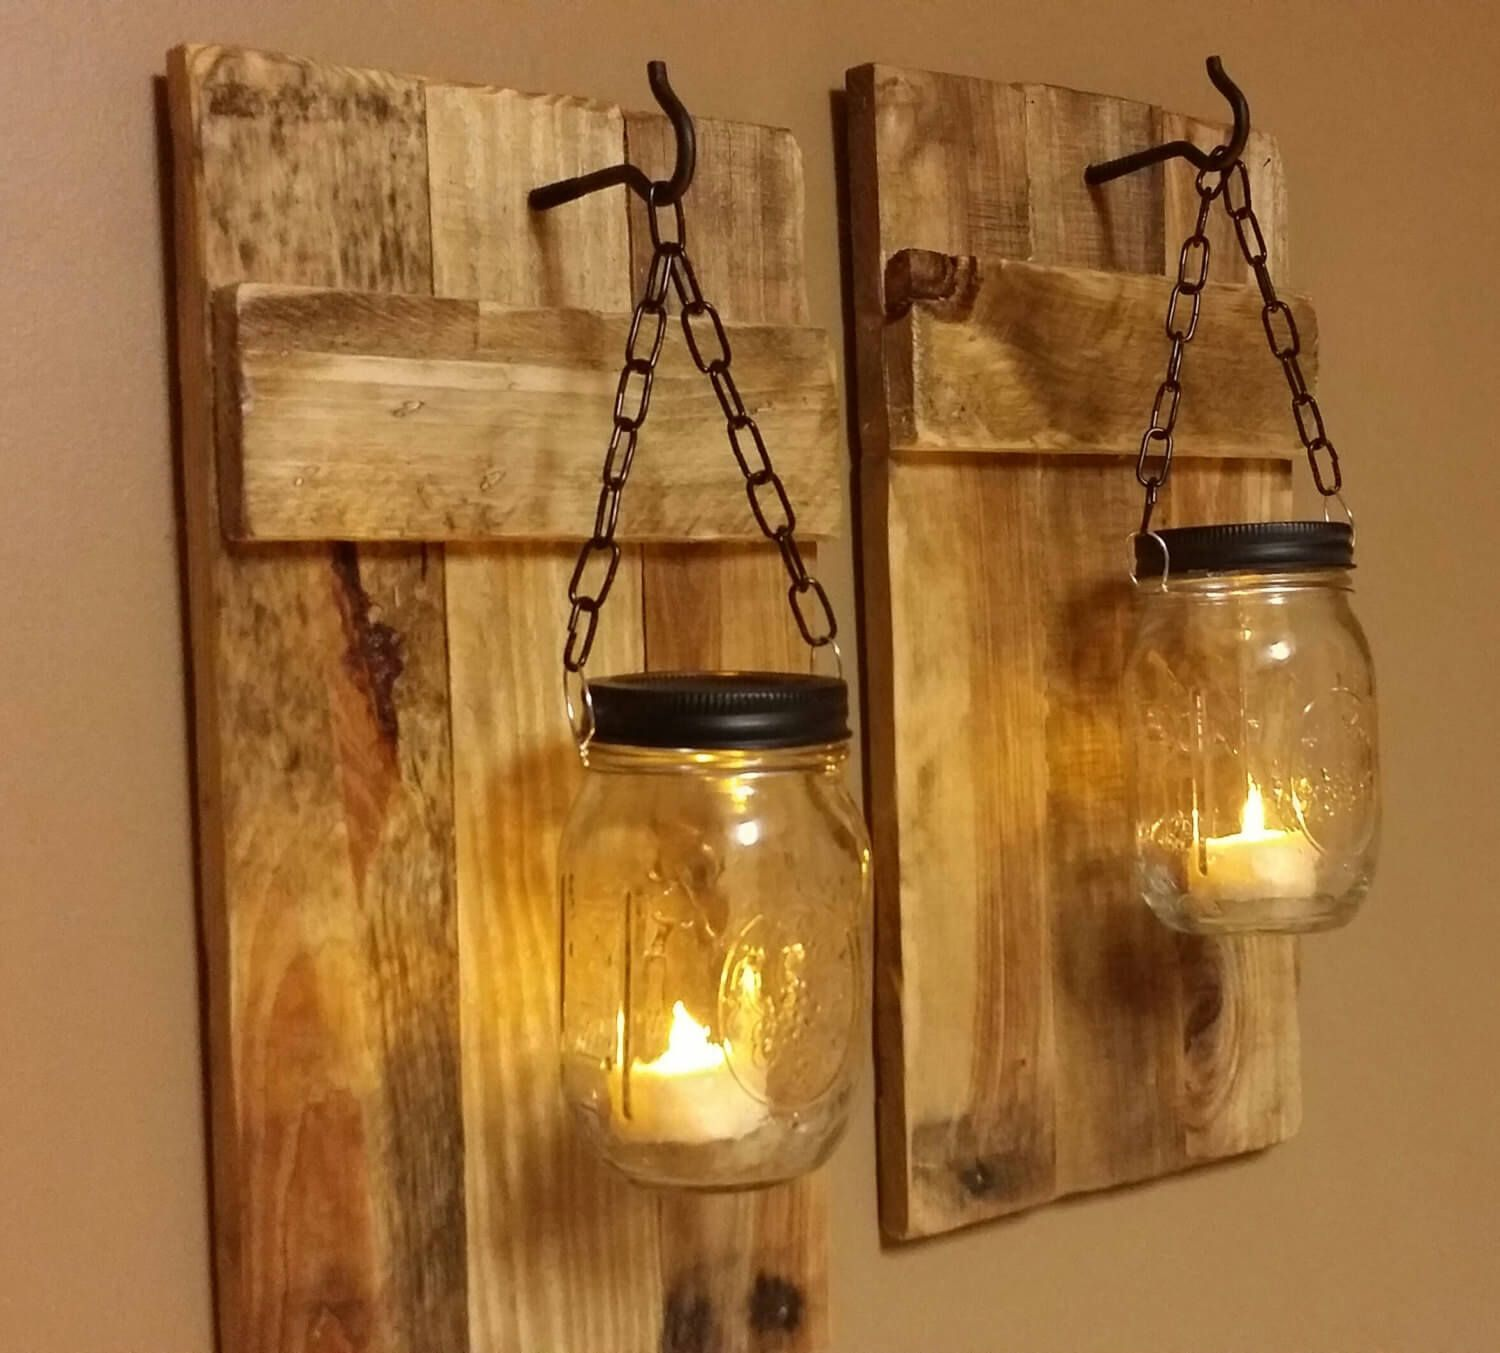 Rustic And Steampunk Wall Lsnterns Home Decor Ideas Diy Design